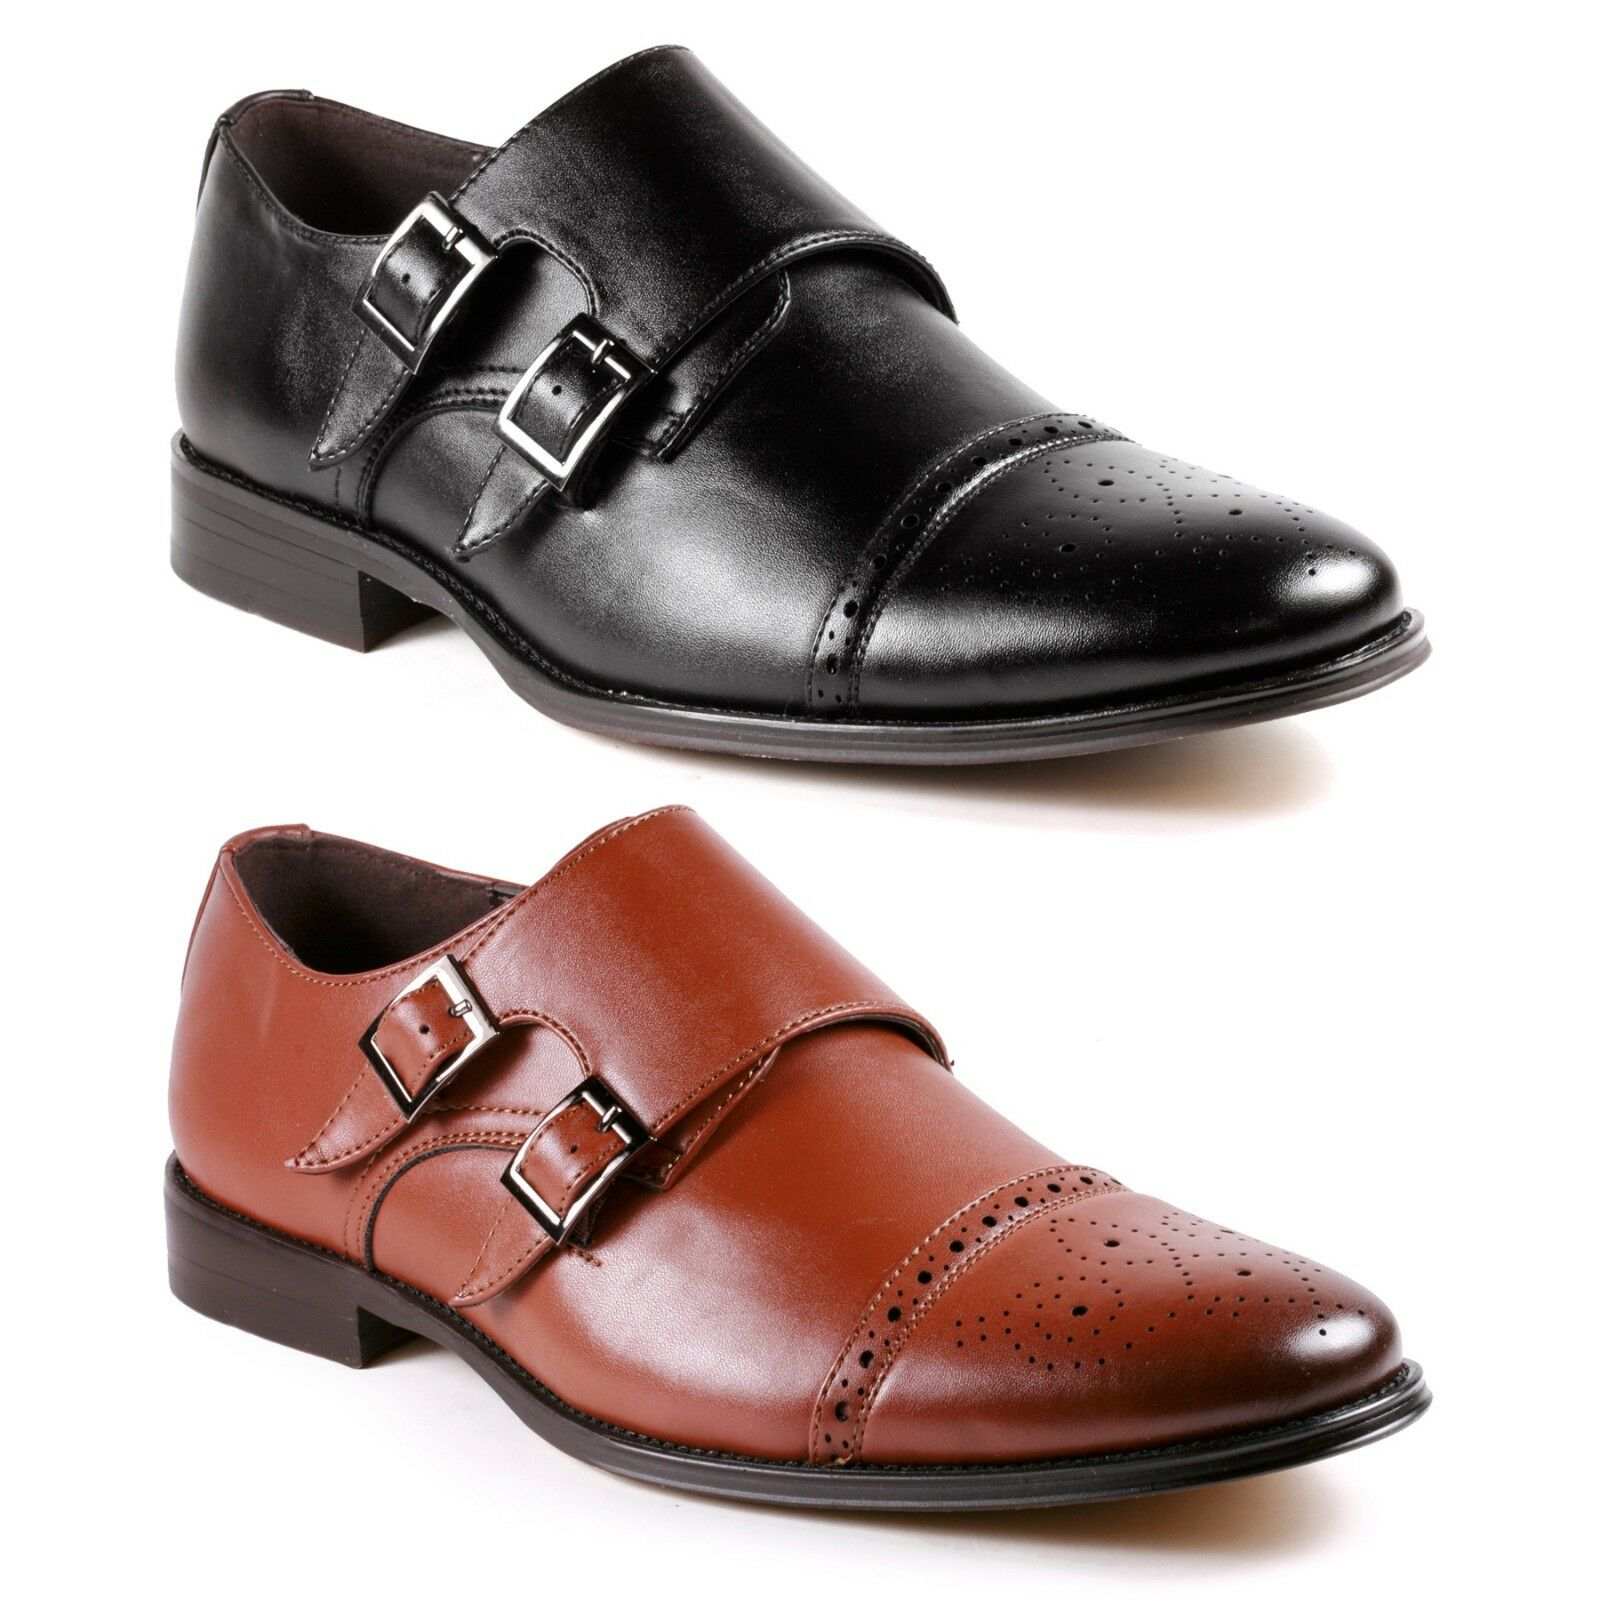 Metrocharm MC300 Men's Cap Toe Double Monk Strap Oxford Classic Dress Shoes